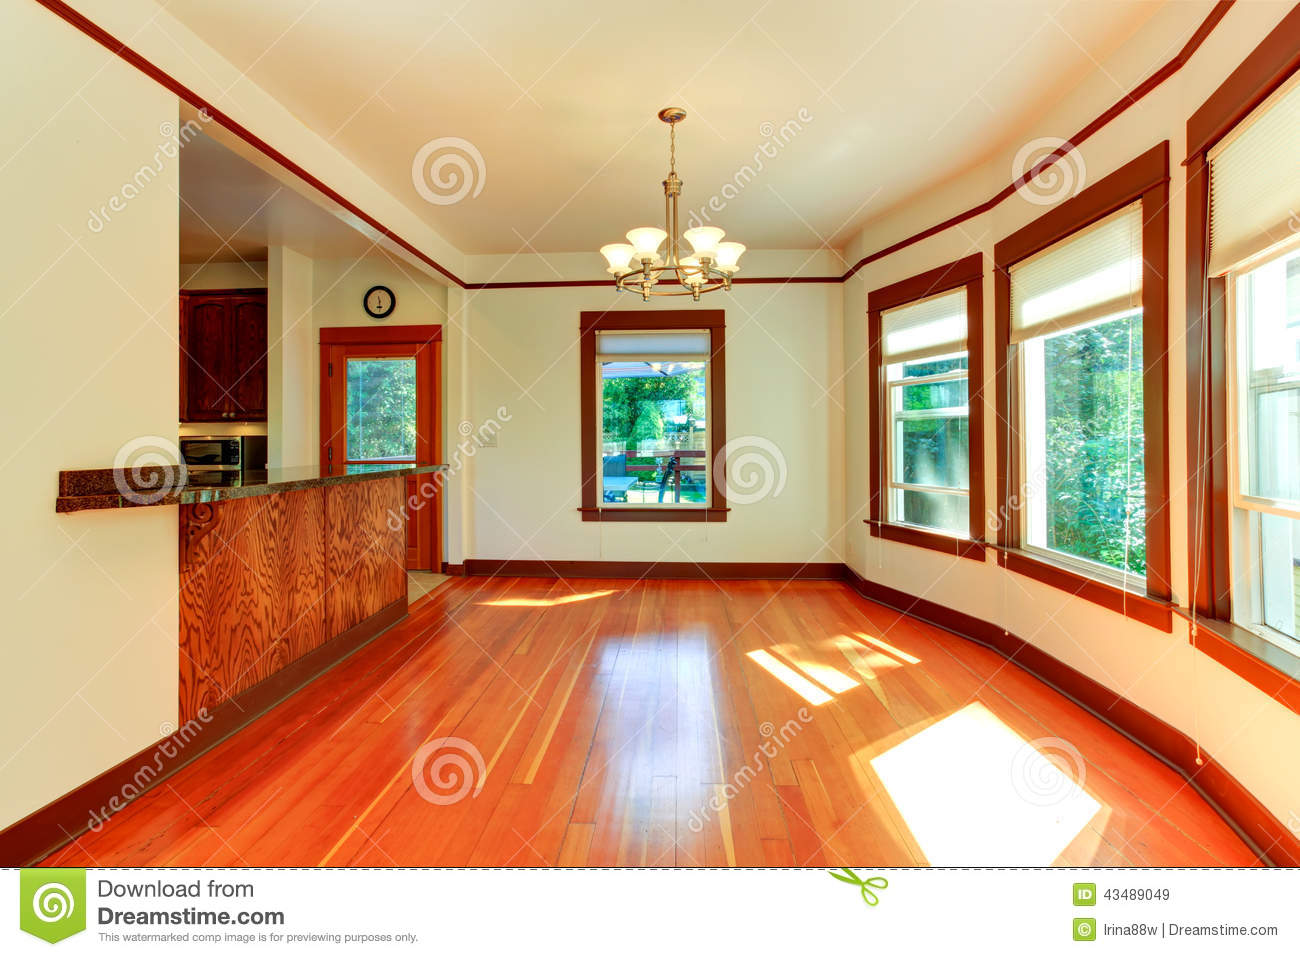 Empty House Interior In Soft Ivory With Brown Trim Stock Photo Image 43489049